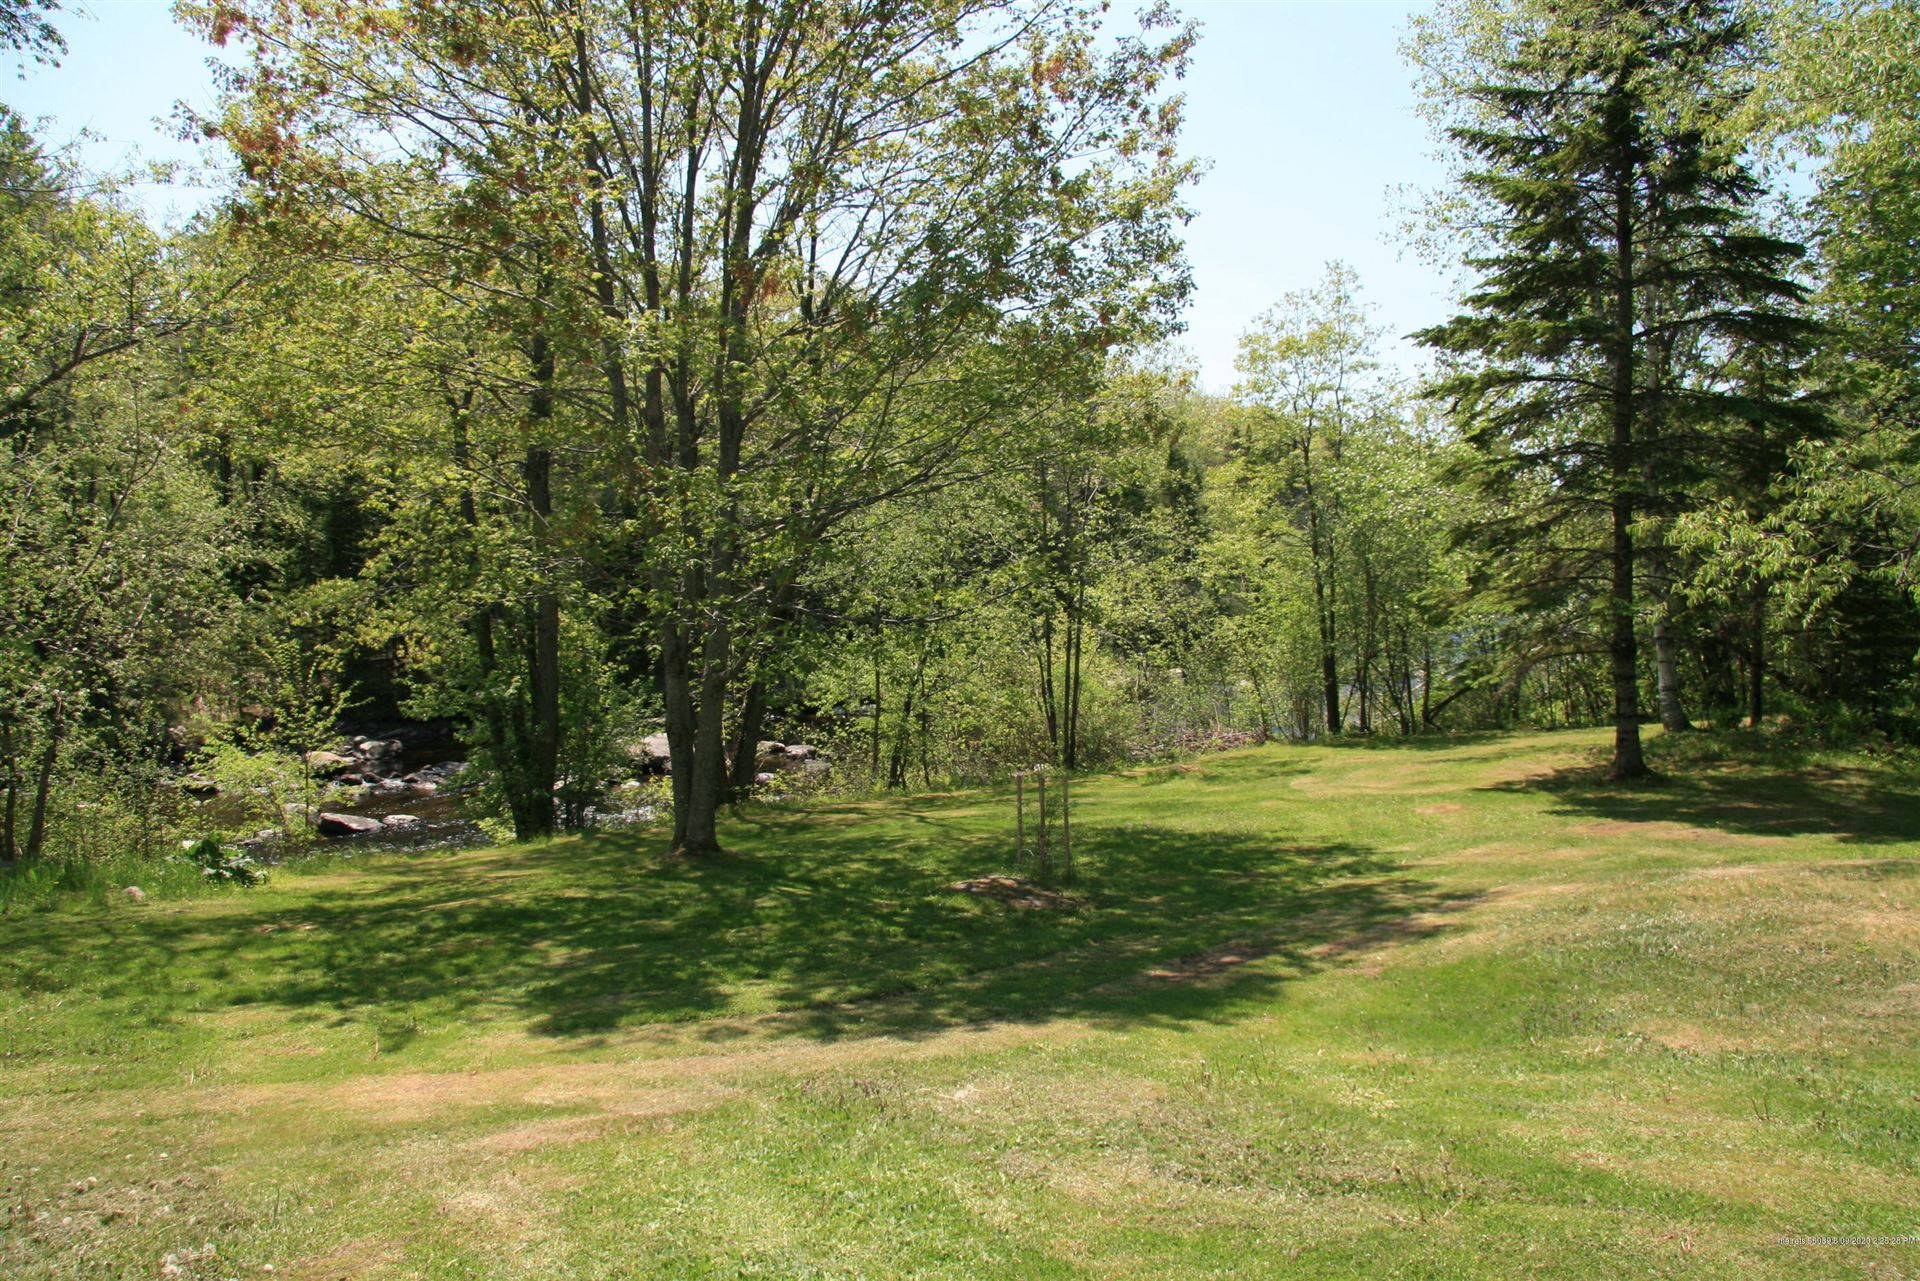 Photo of 2 River Road, Abbot, ME 04406 (MLS # 1453878)